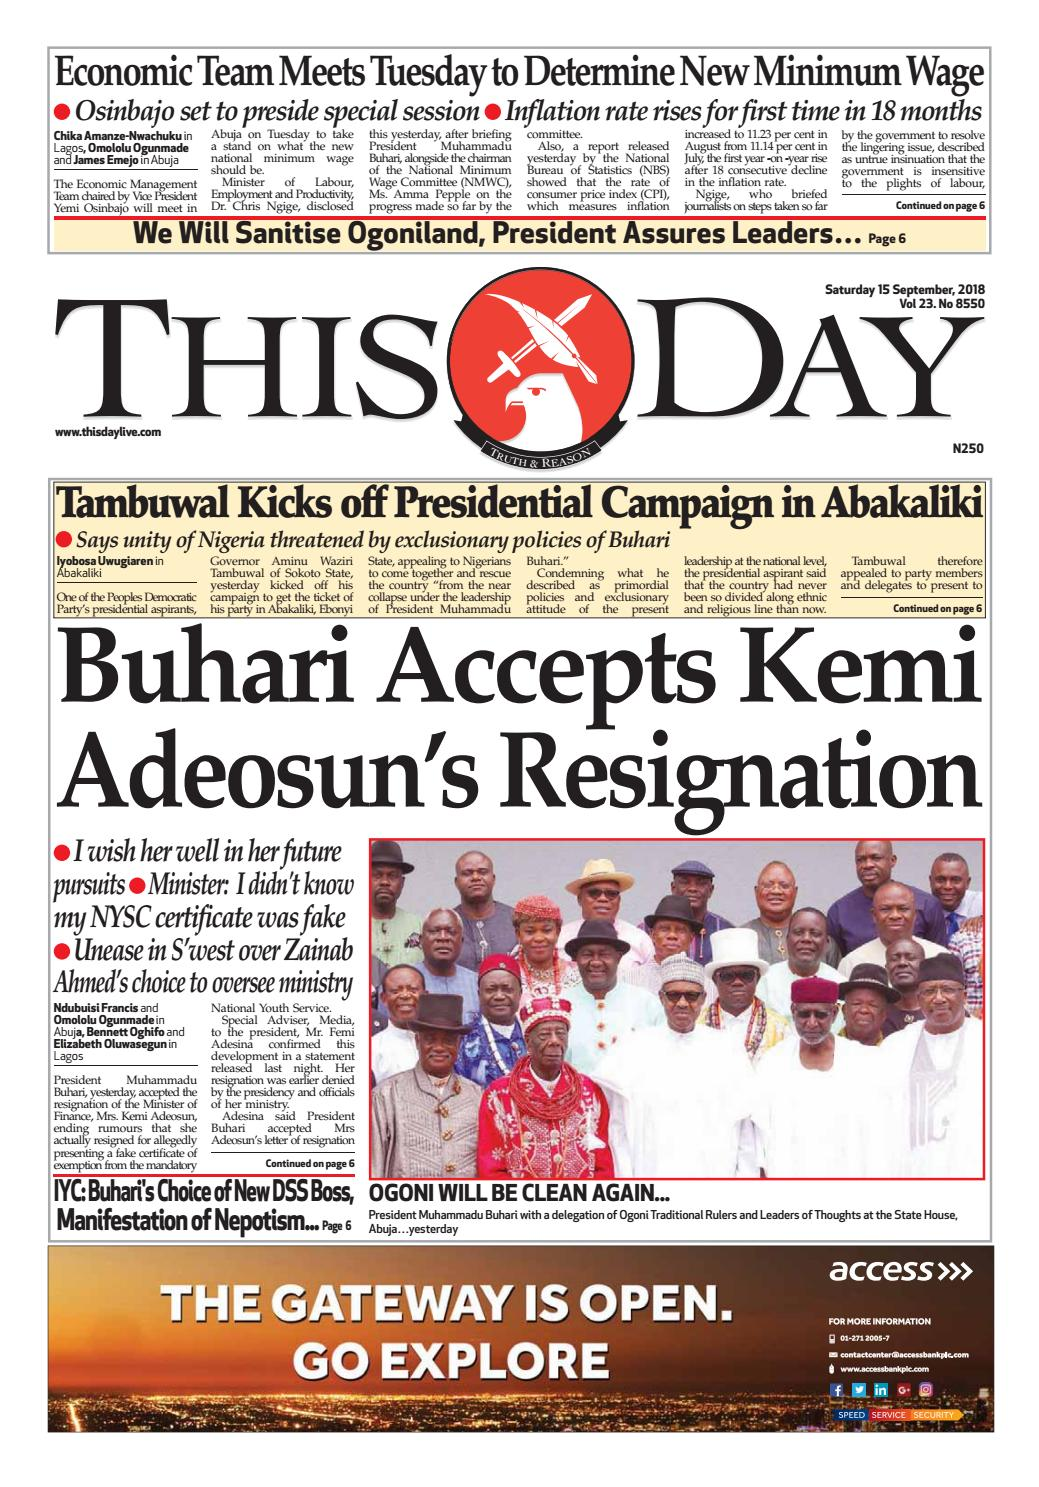 095082bab22 SATURDAY 15TH SEPTEMBER 2018 by THISDAY Newspapers Ltd - issuu